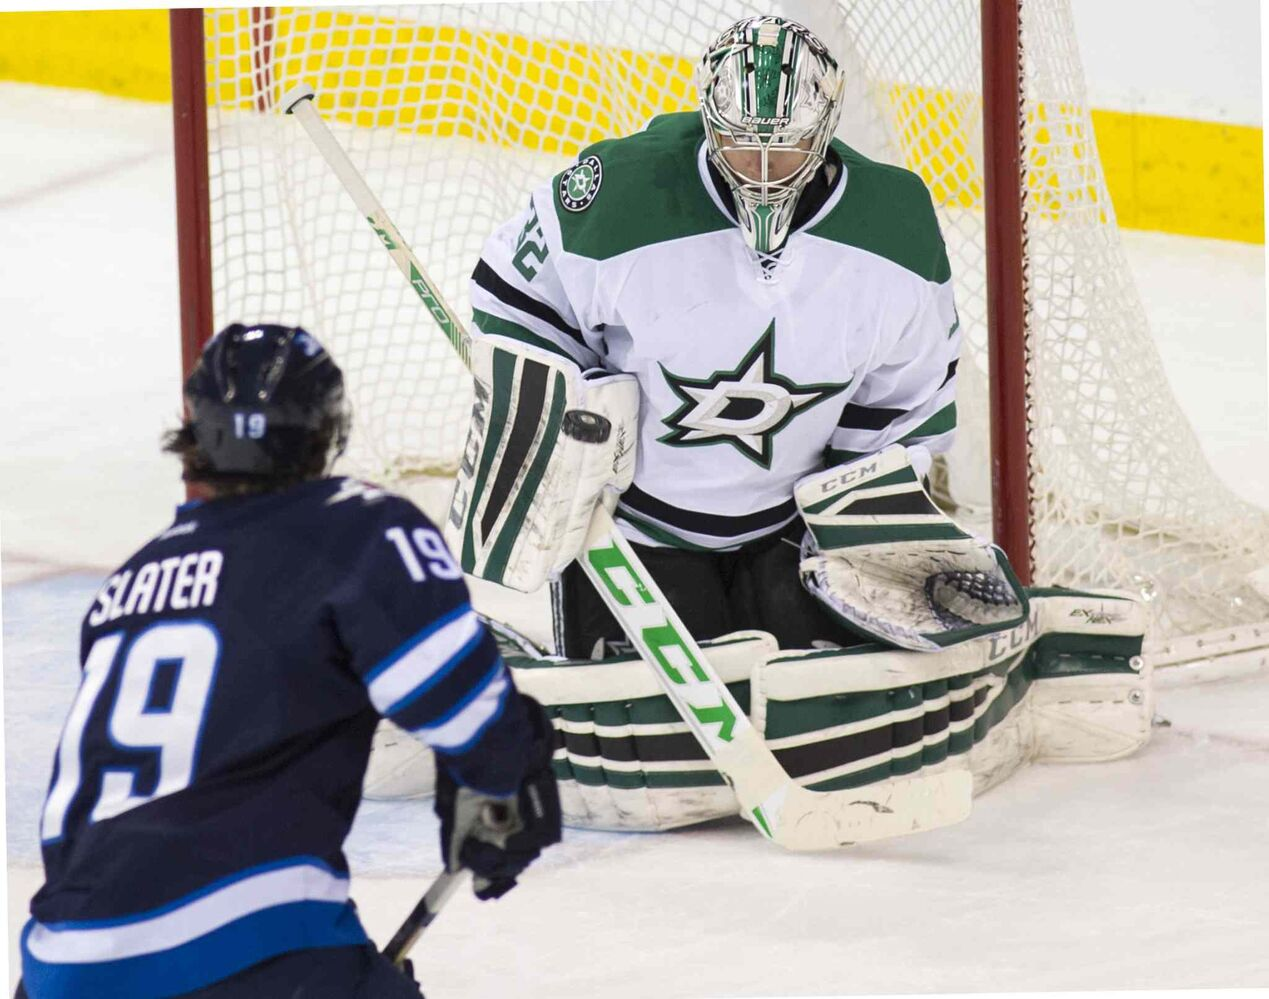 Dallas Stars goaltender Kari Lehtonen (#32) blocks a shot from Winnipeg Jets Jim Slater (#19) during first period. (DAVID LIPNOWSKI / WINNIPEG FREE PRESS)